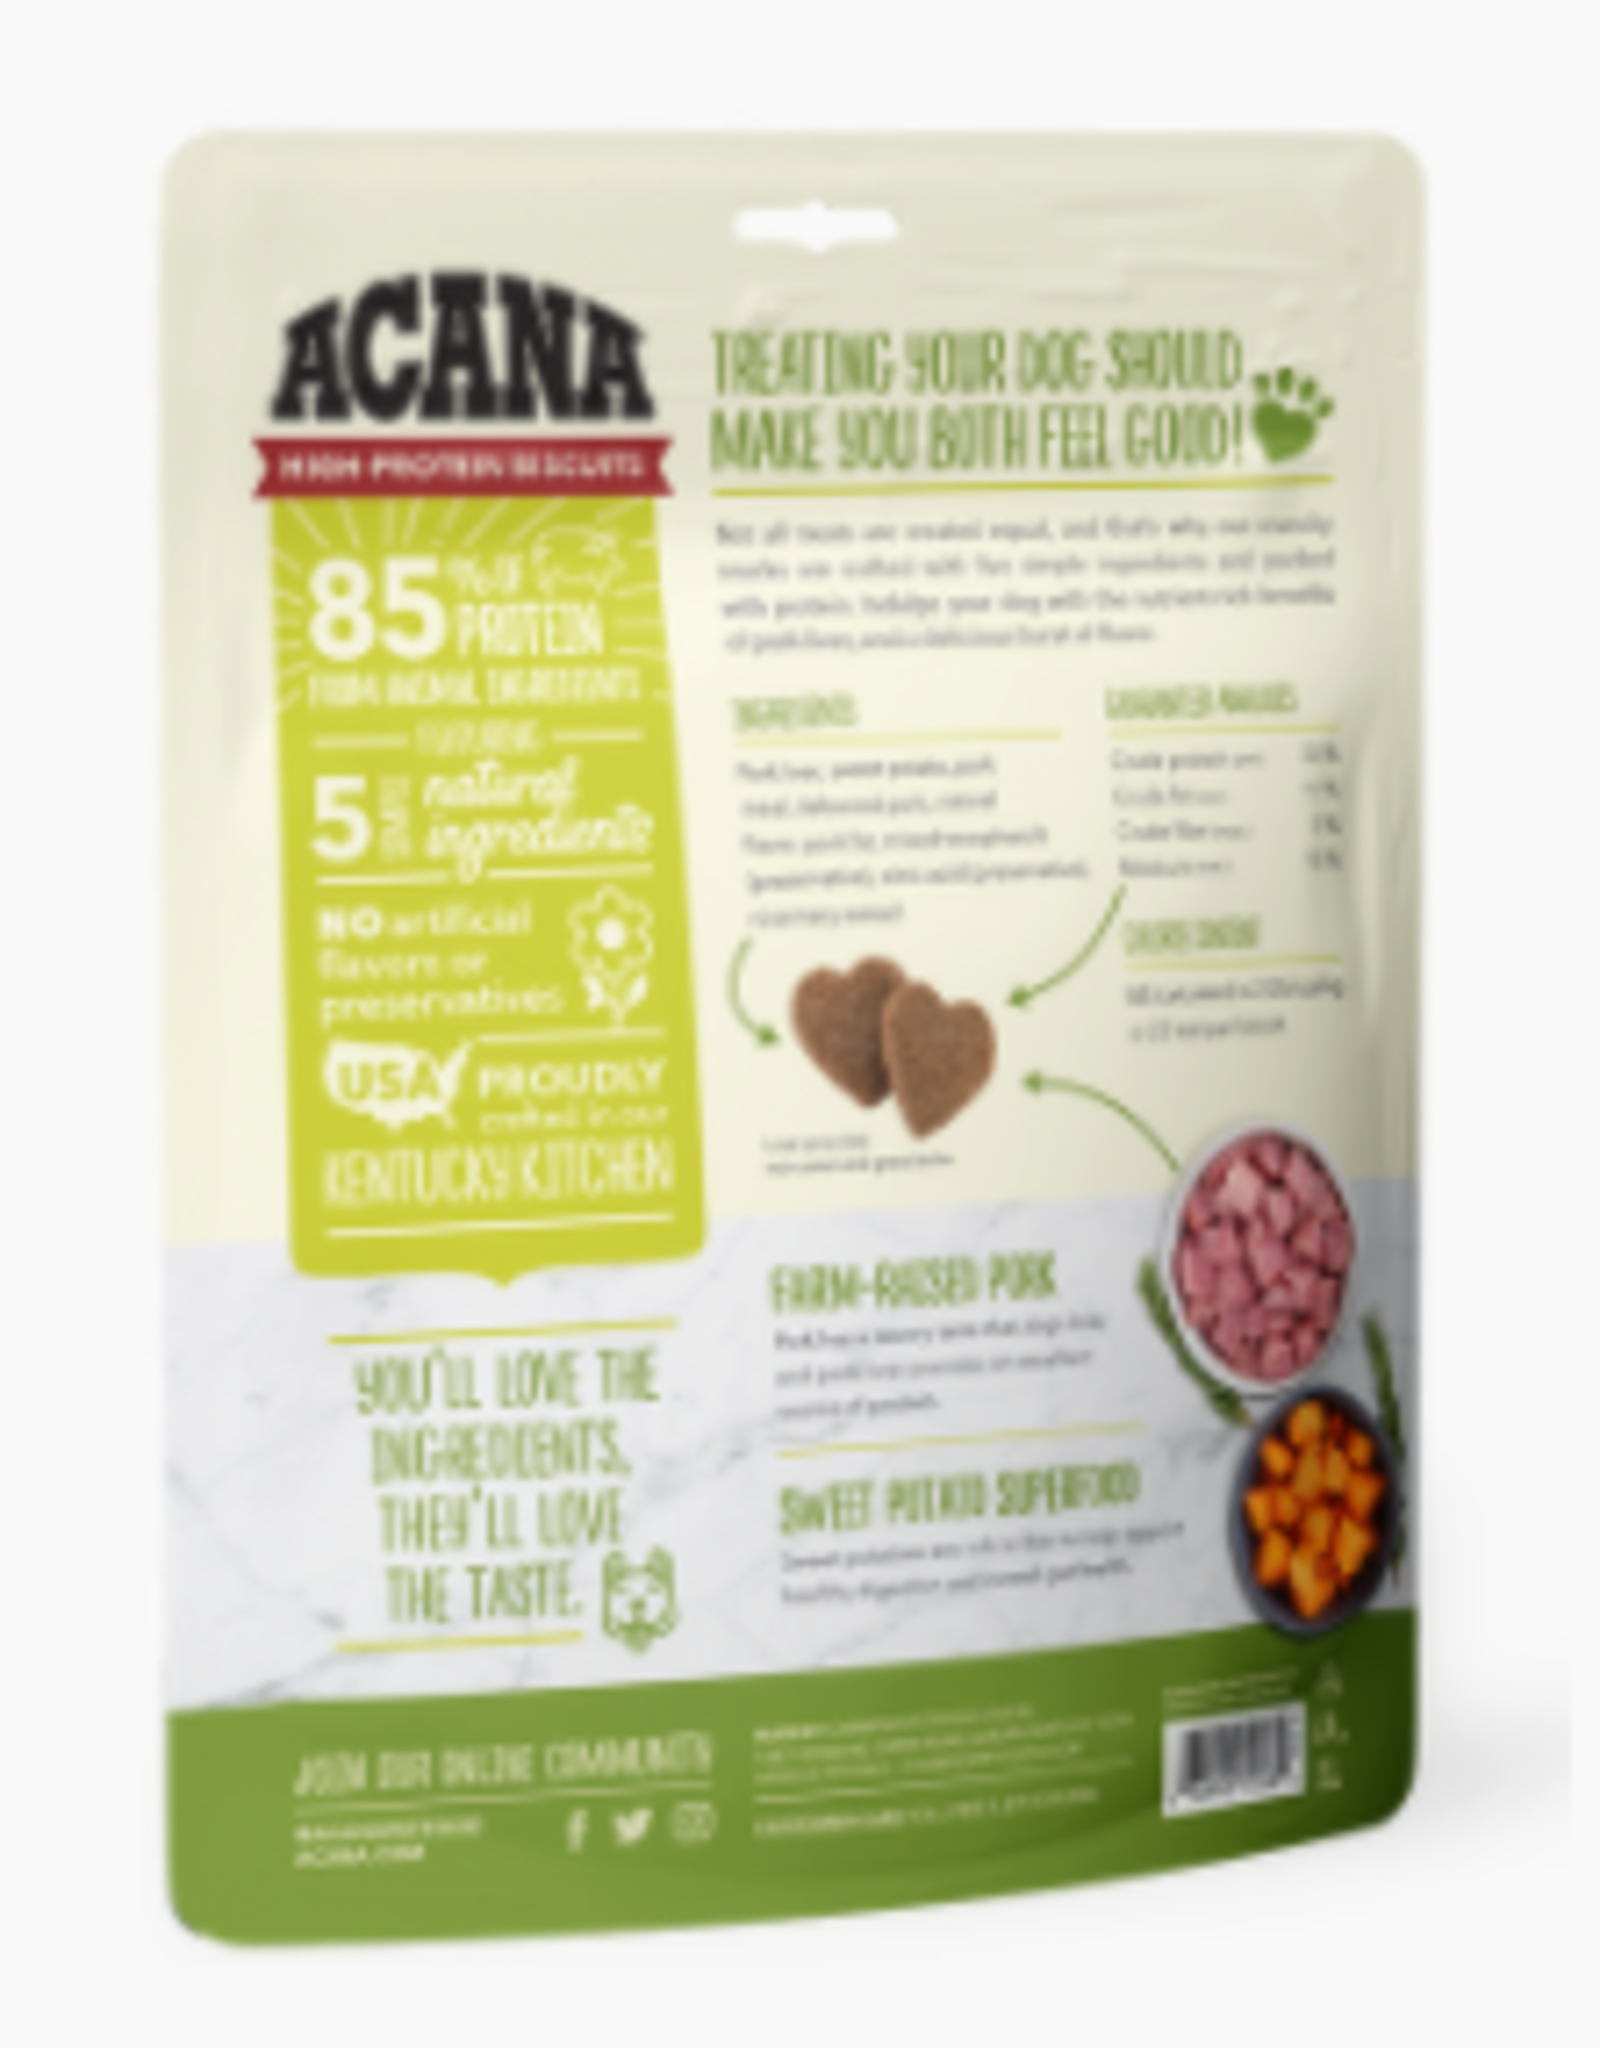 CHAMPION PET FOOD ACANA HIGH PROTEIN BISCUIT CRUNCHY PORK LIVER SMALL 9OZ